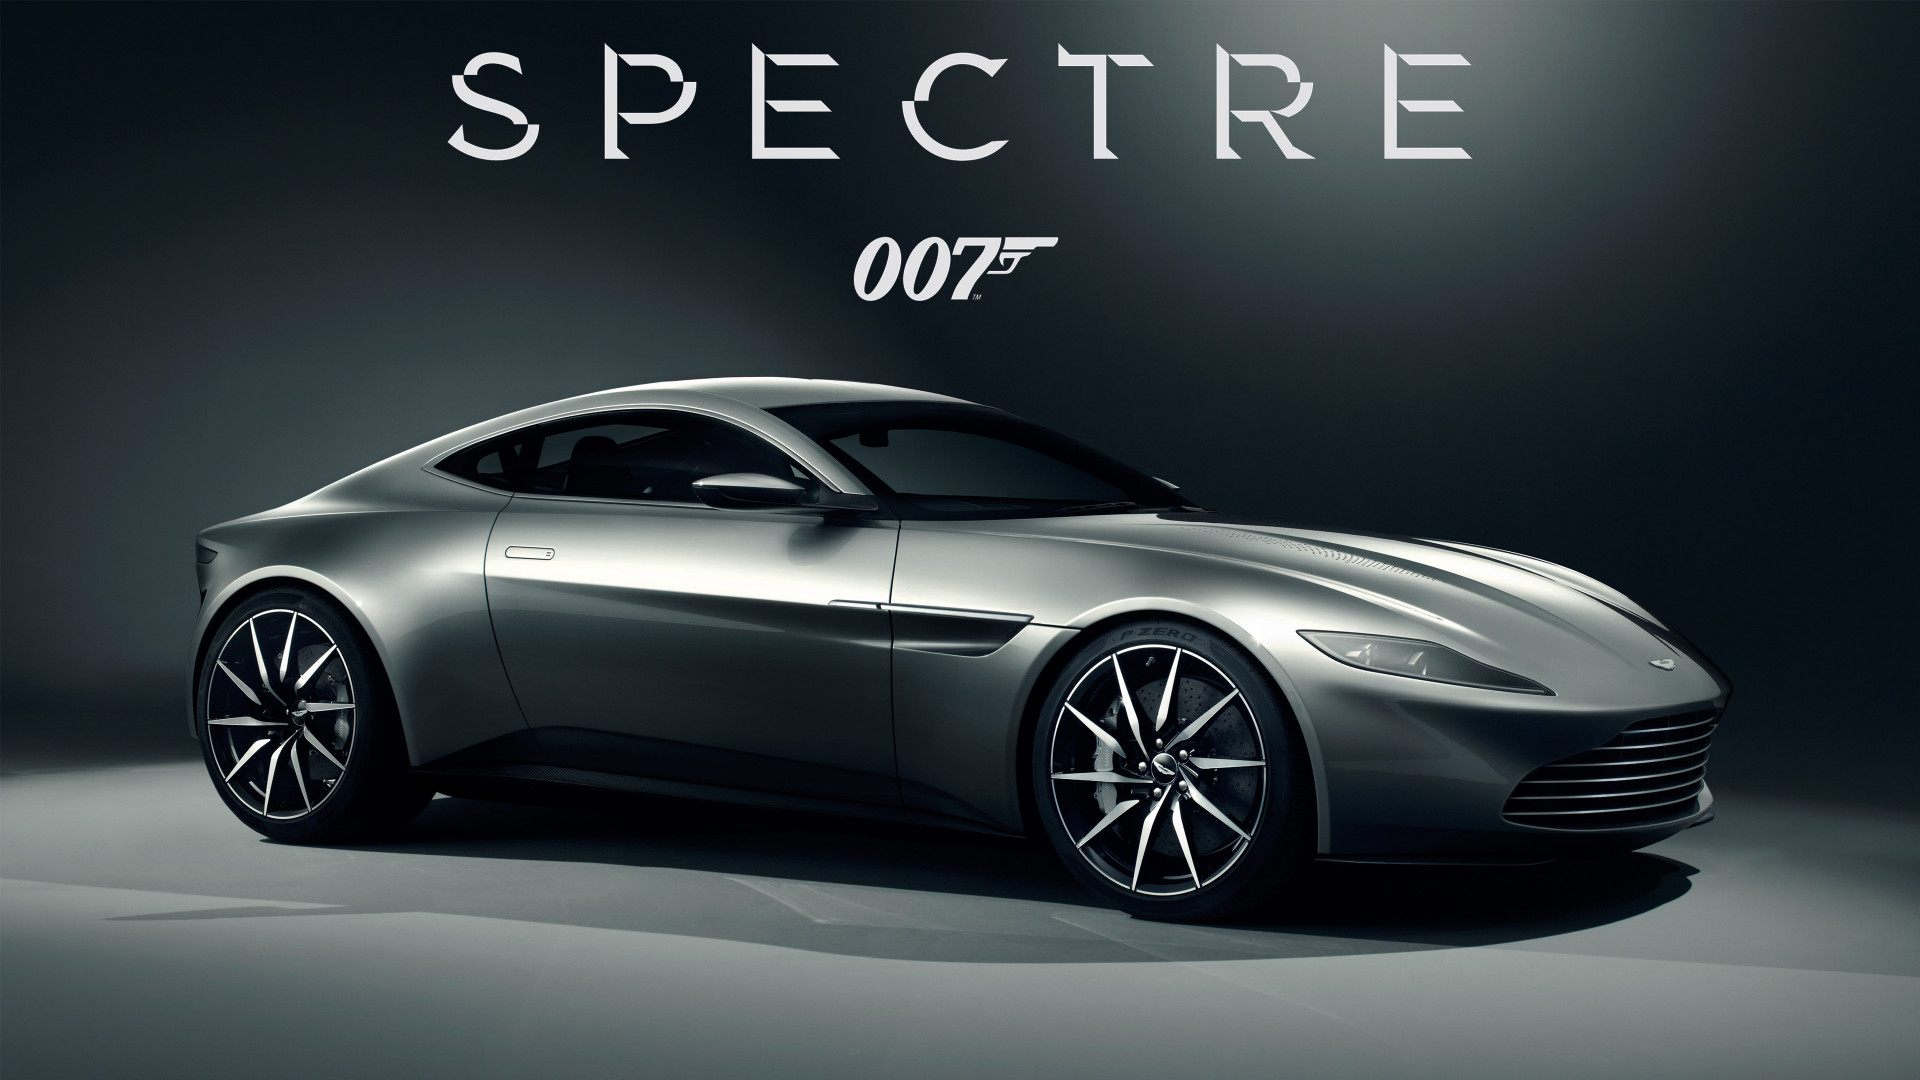 Aston Martin DB10 007 Spectre car wallpaper 1920x1080